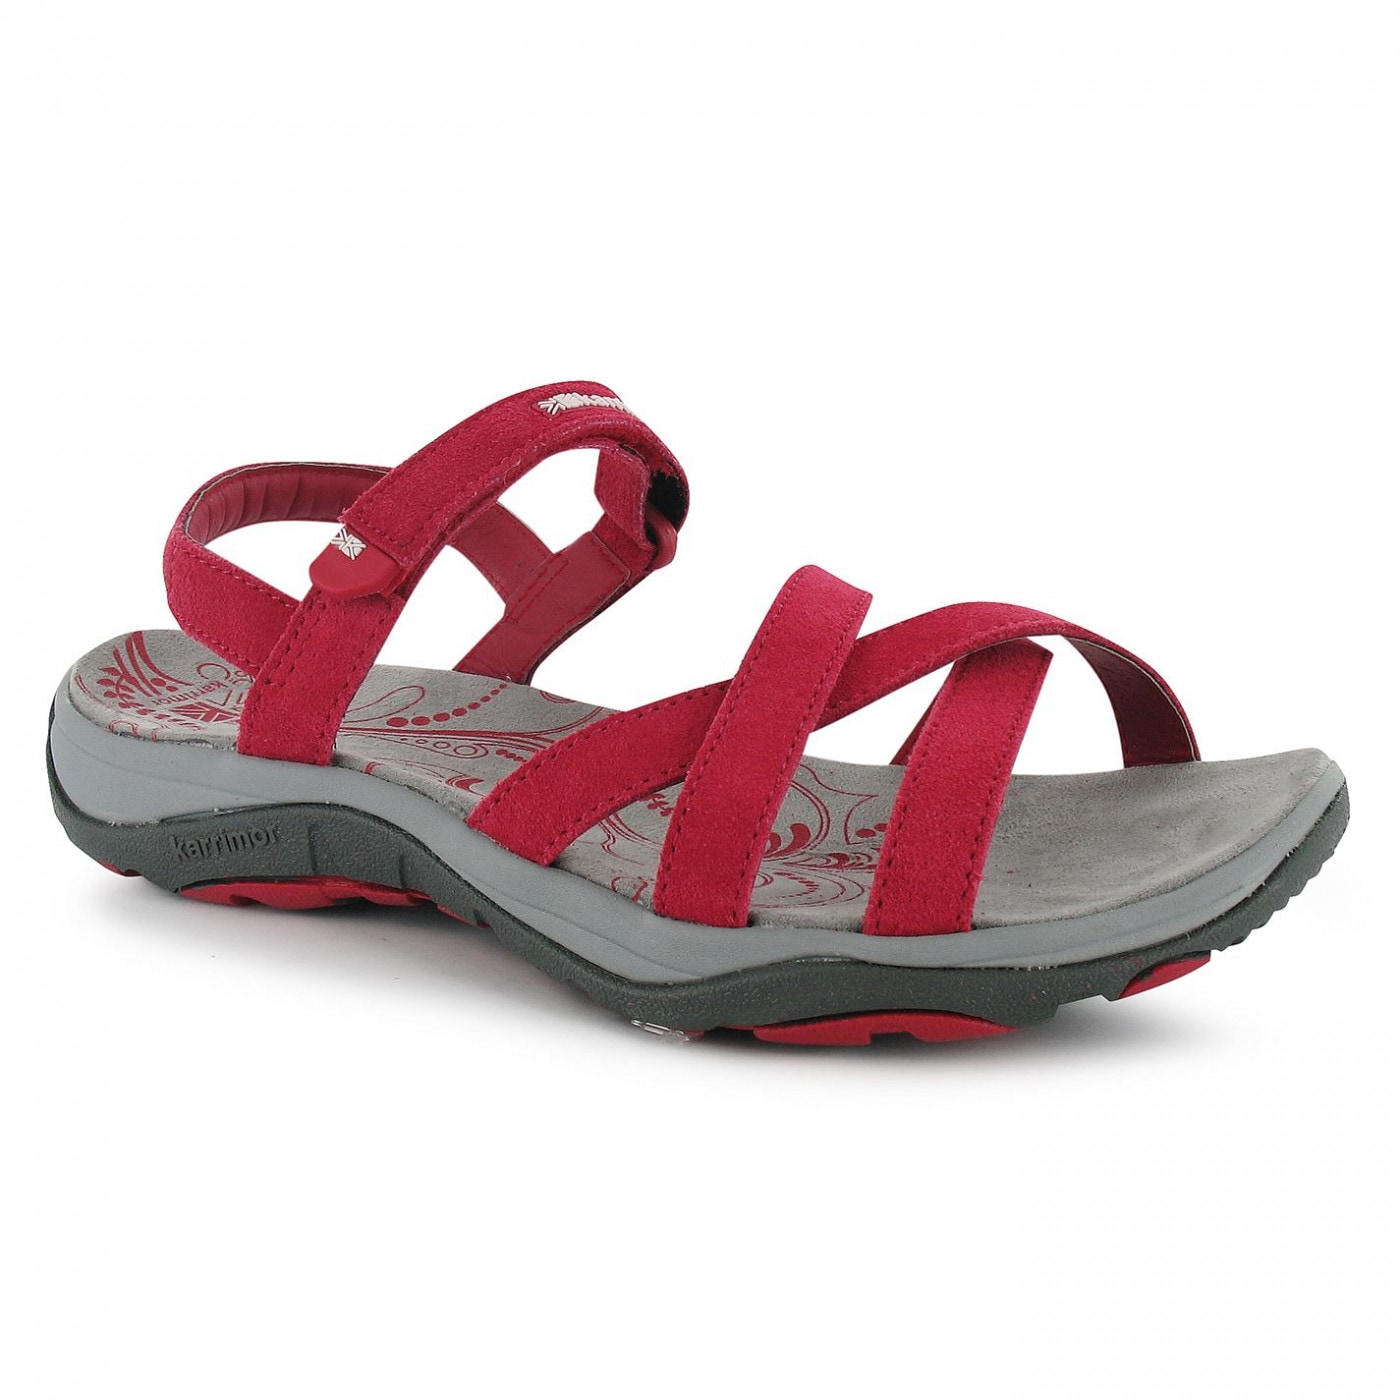 313bfb85 Karrimor Salina Leather Ladies Outdoor Sandals - FACTCOOL